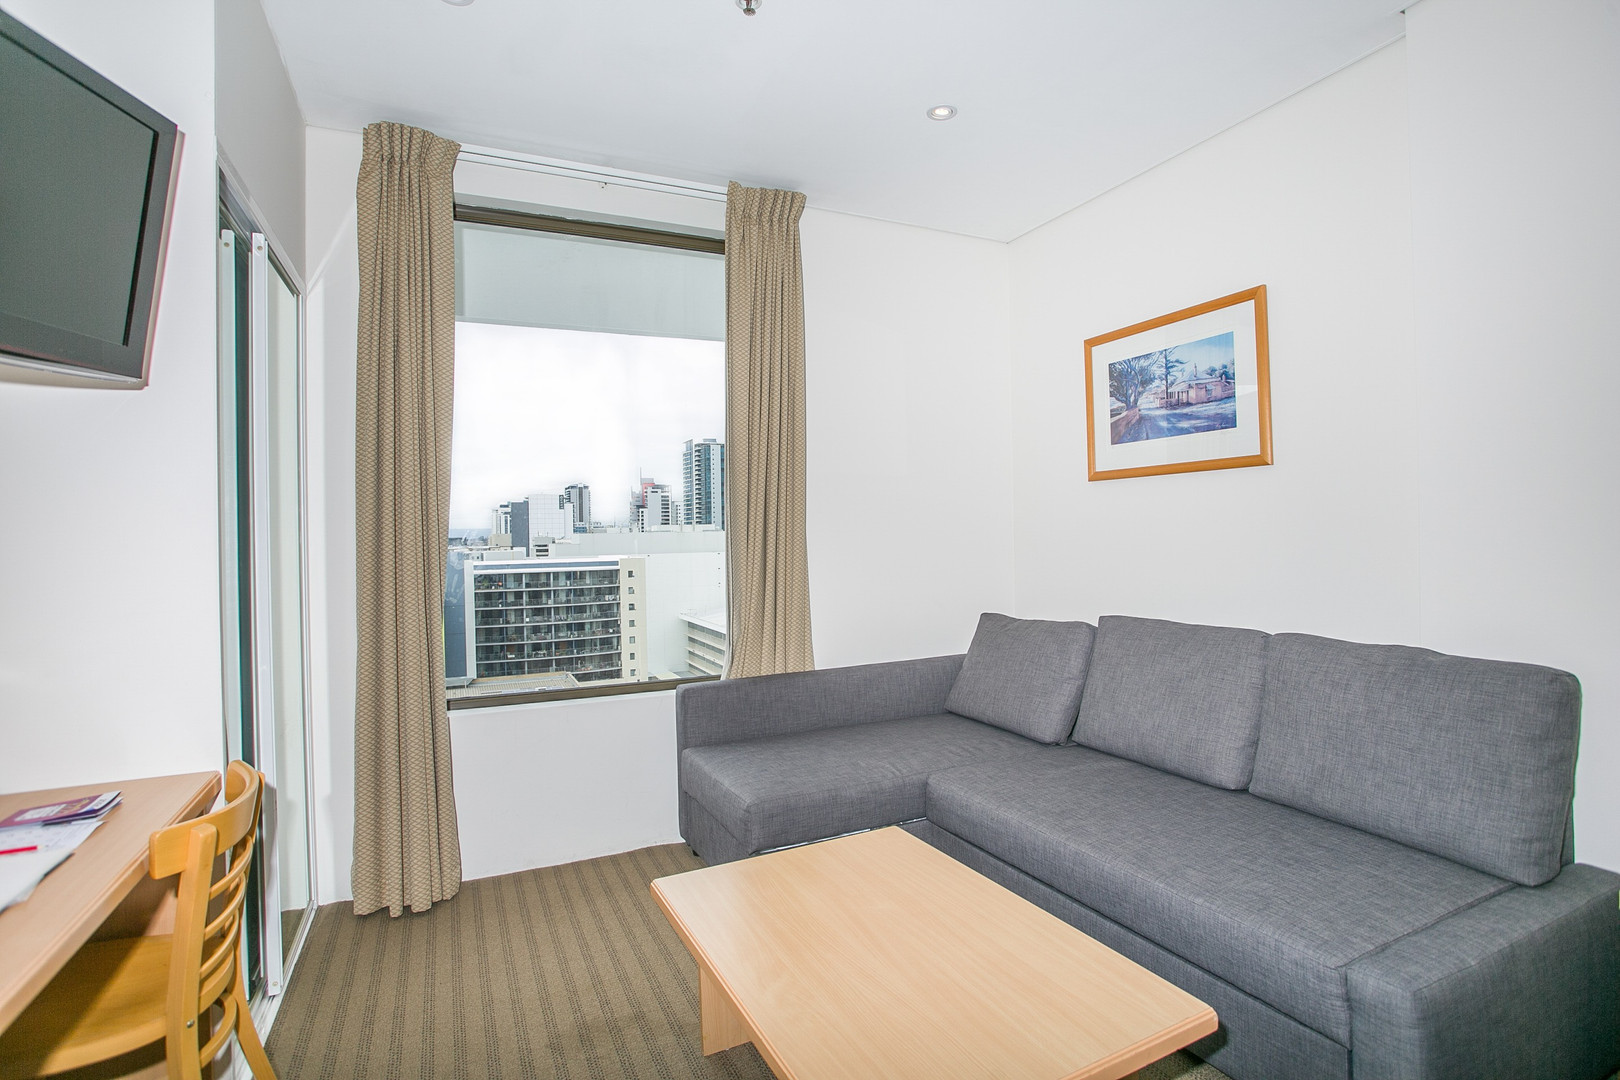 Studio Apartment Lounge - Short Term Rental Perth CBD.jpg